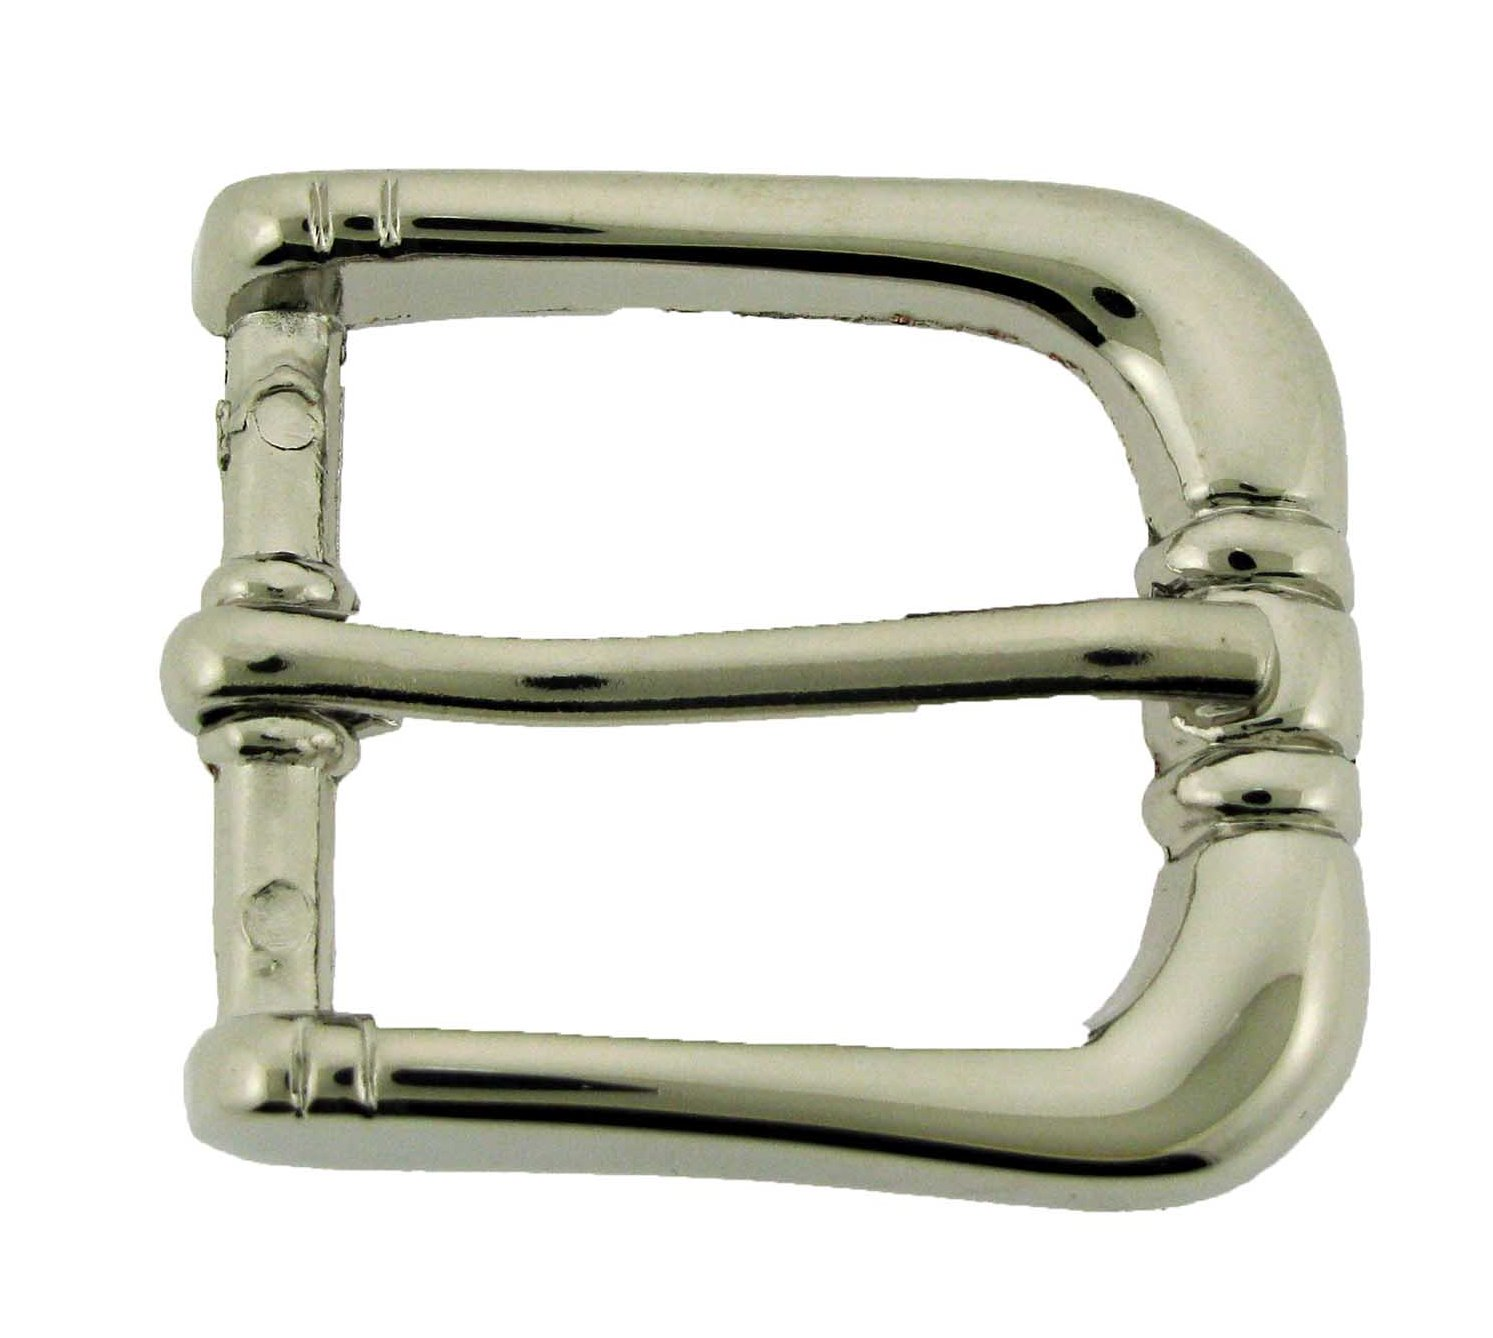 Jogging I Run Chrome Finished Belt Buckle